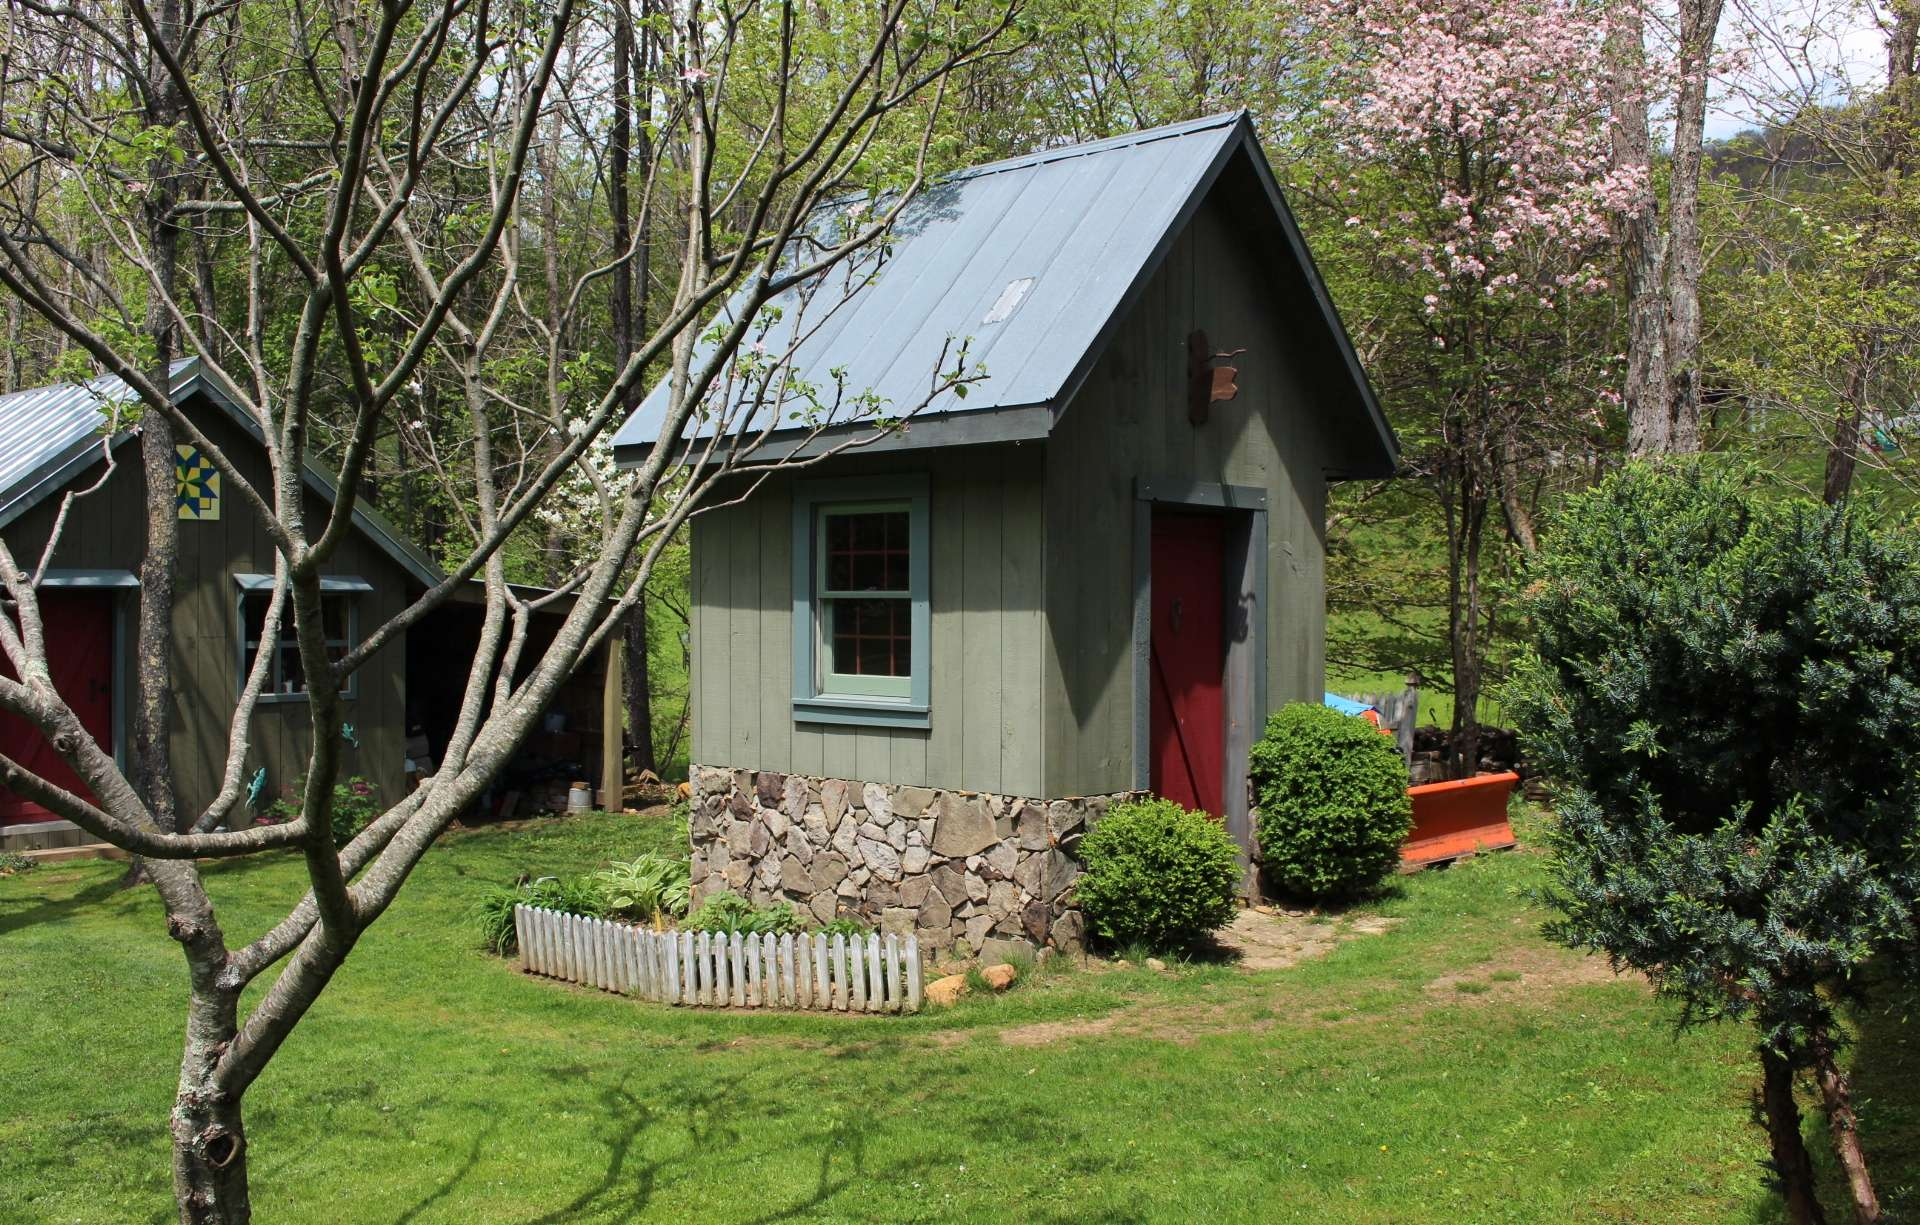 This cute milk room outbuilding will work nicely as storage or potting shed.